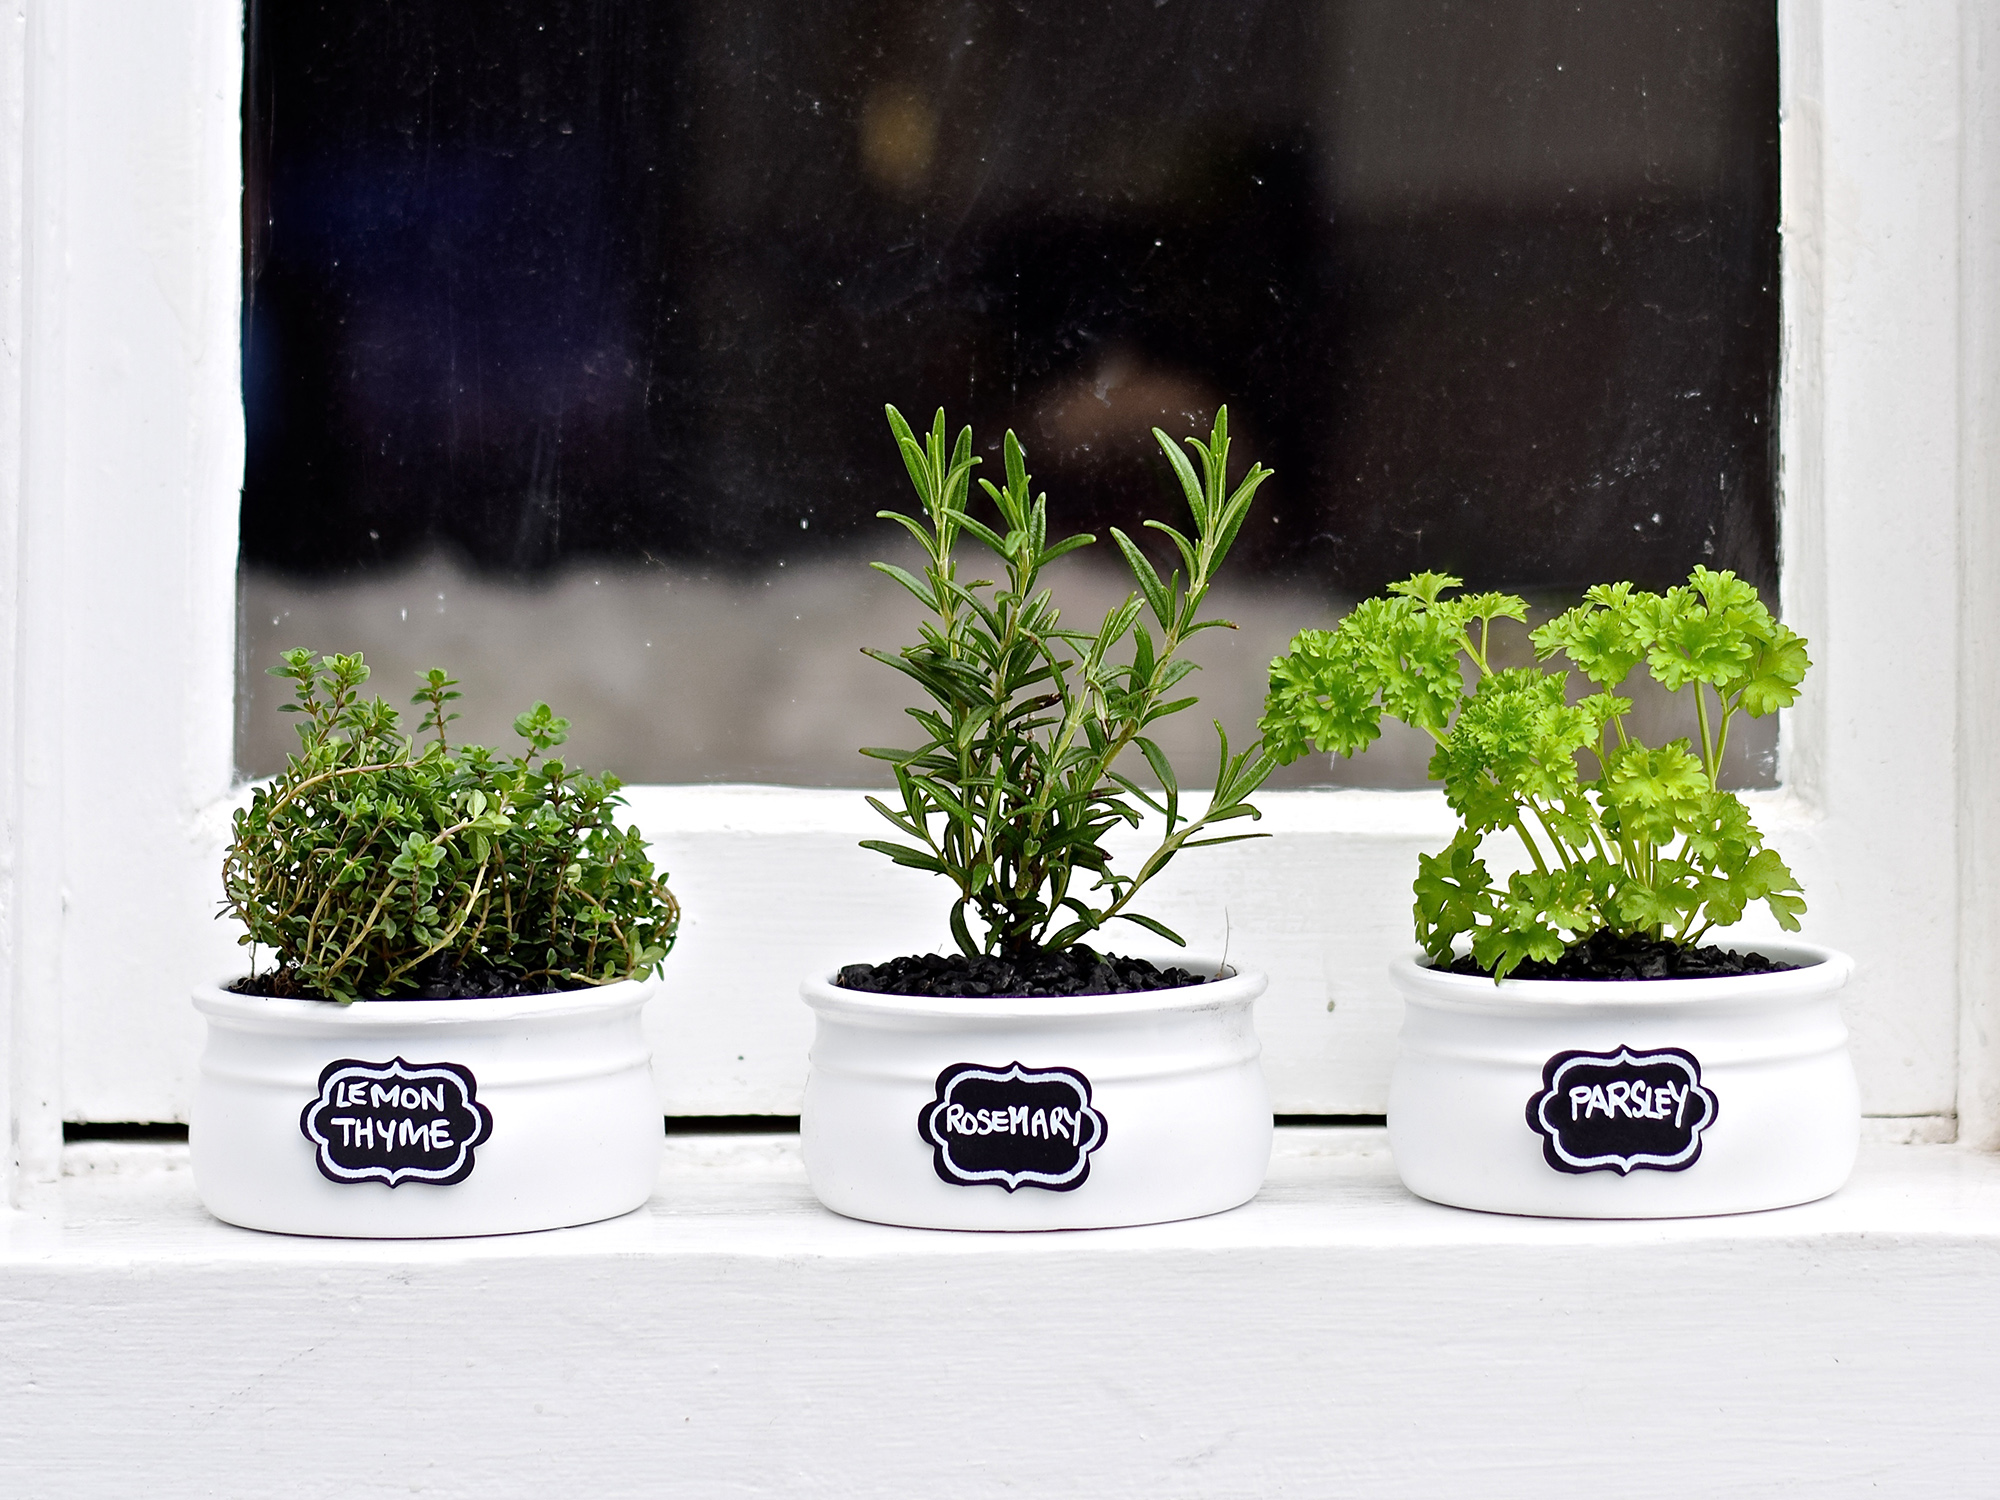 Herb pots for kitchen - Share Your Kitchen Herb Garden Creations With Us Via Instagram And Facebook